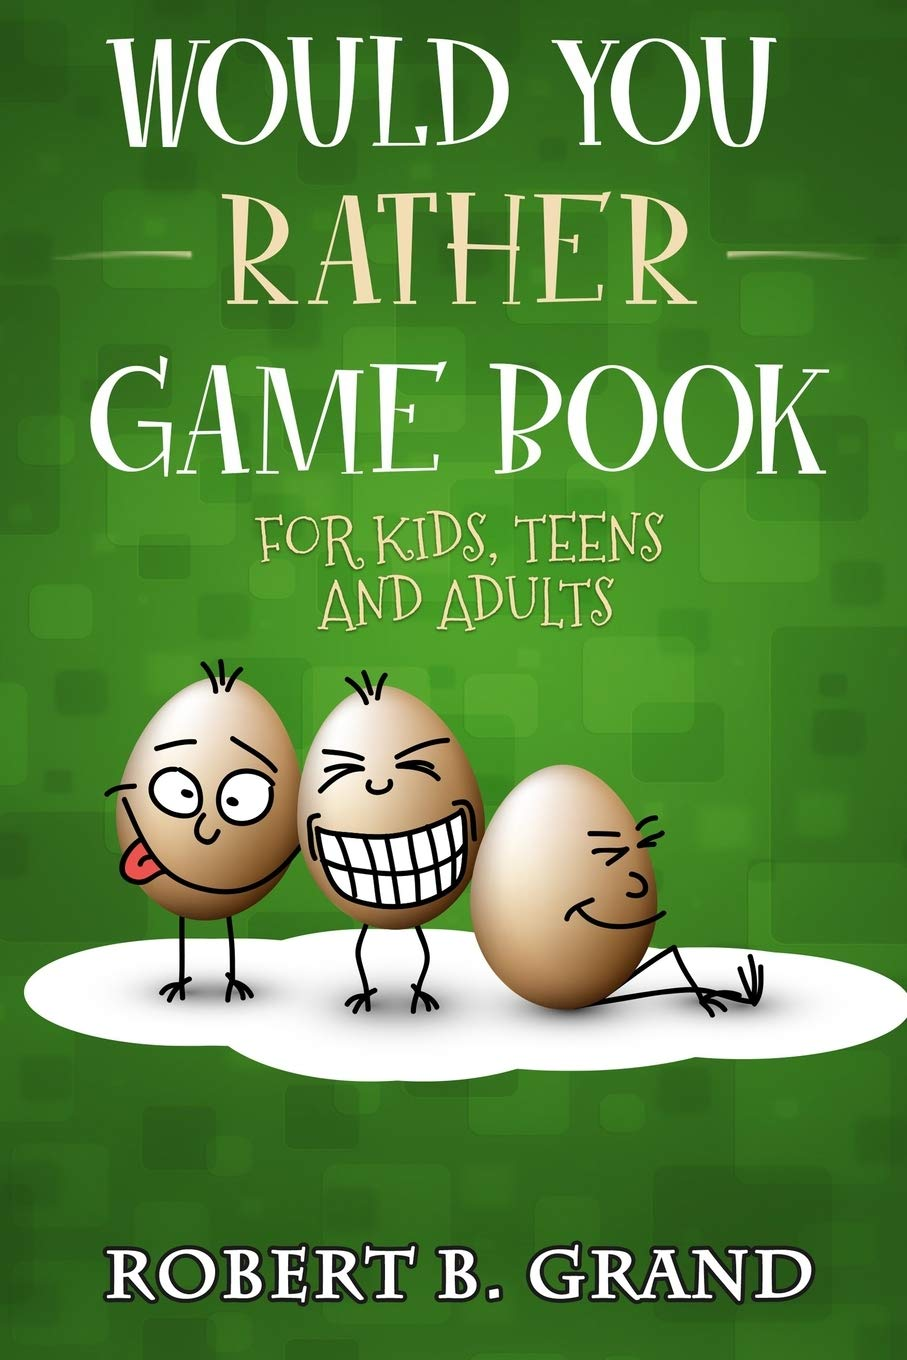 Would You Rather Game Book For Kids, Teens And Adults: Hilario's Books for Kids with 200 Would you quite questions and 50 Trivia questions